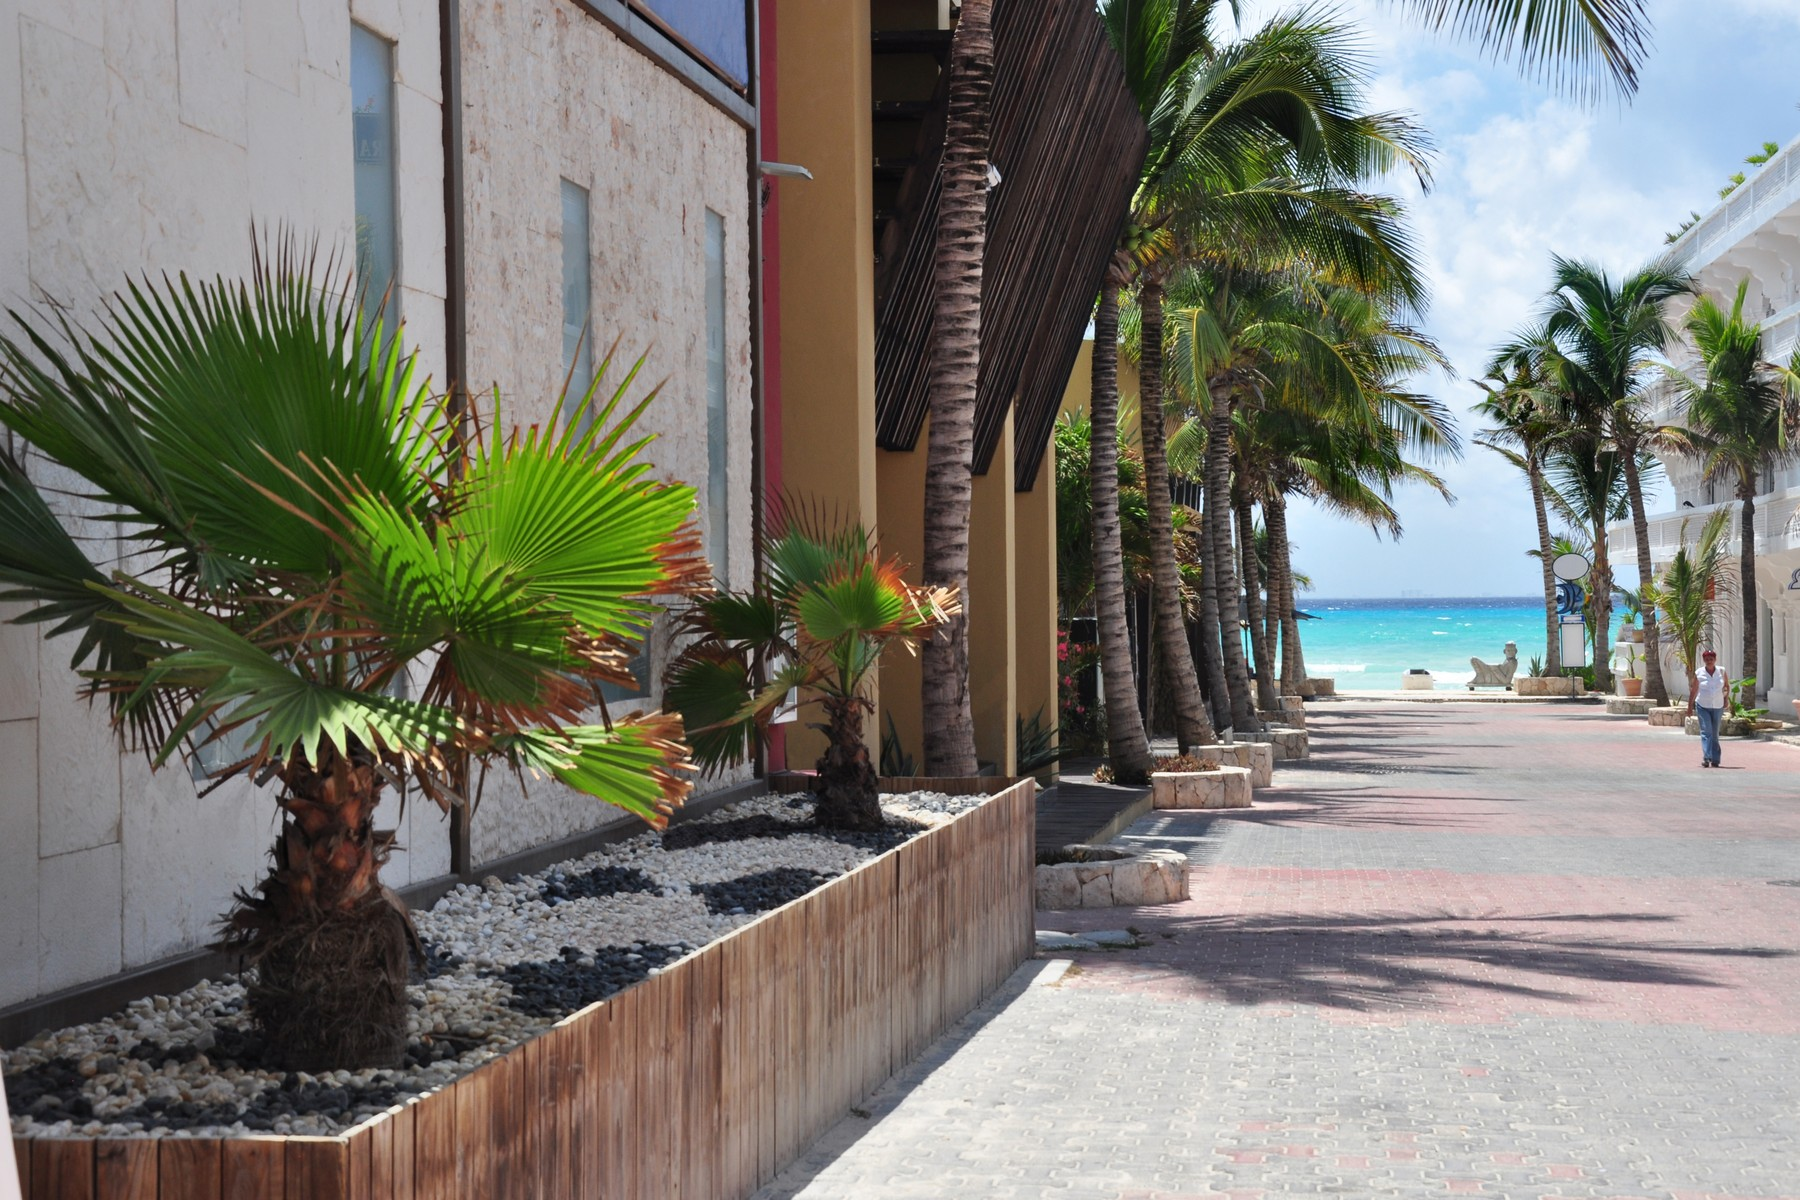 Land for Sale at DEVELOPMENT PARCEL IN PREMIUM LOCATION IN DOWNTOWN Calle 8 entre 5ta Av. y la playa Playa Del Carmen, Quintana Roo, 77710 Mexico